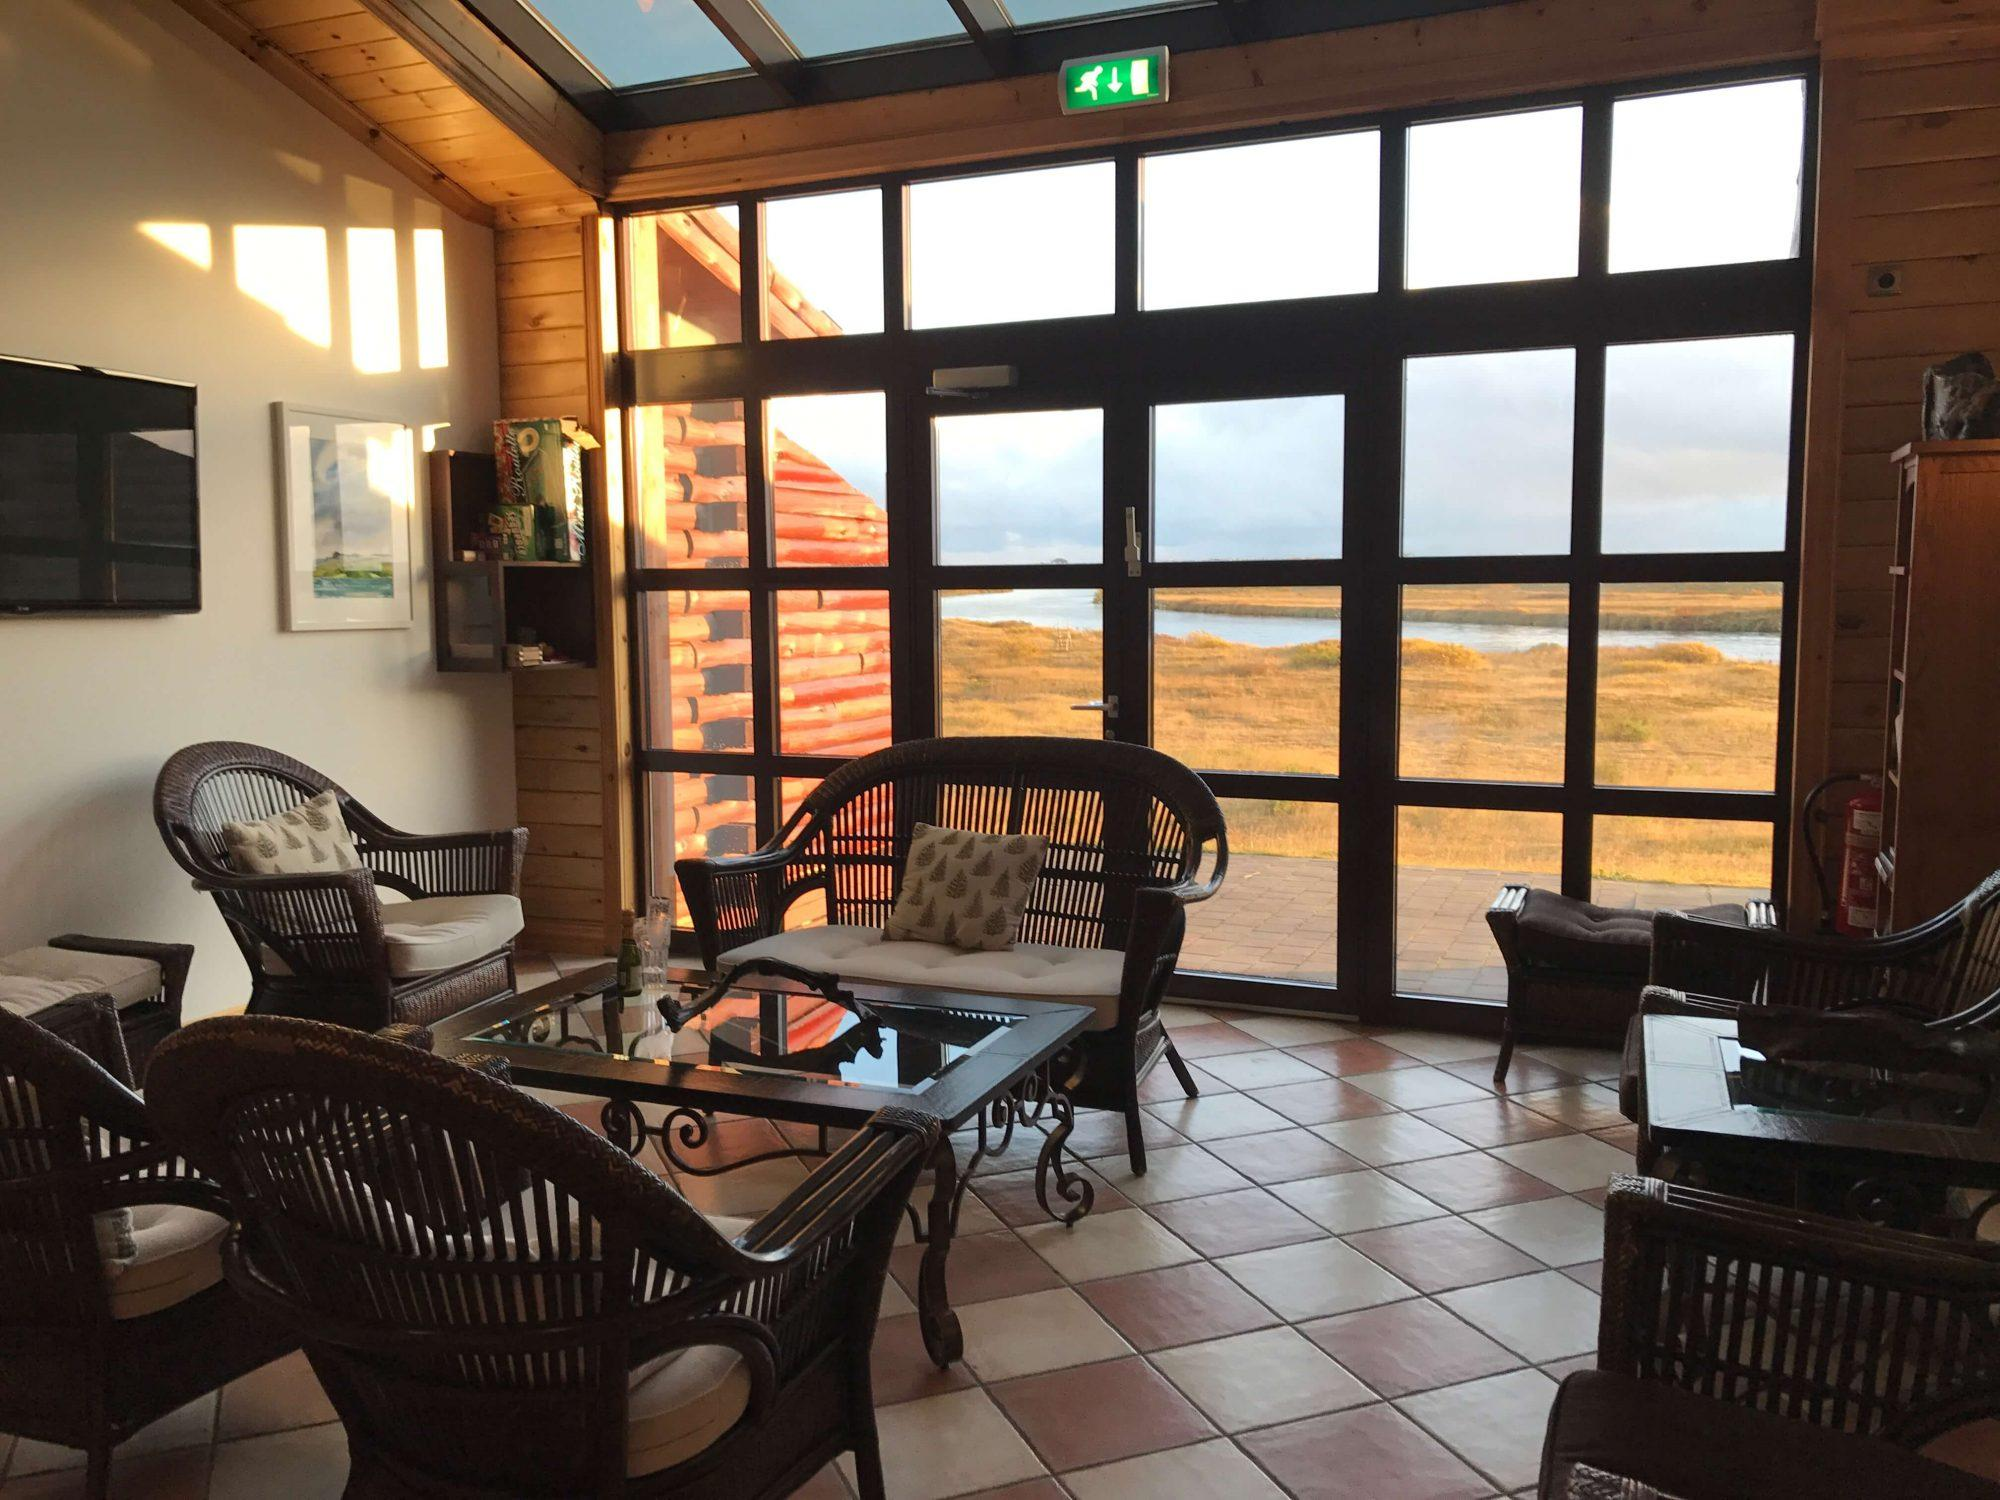 Hotel Ranga Iceland table and chairs area with windows to outside